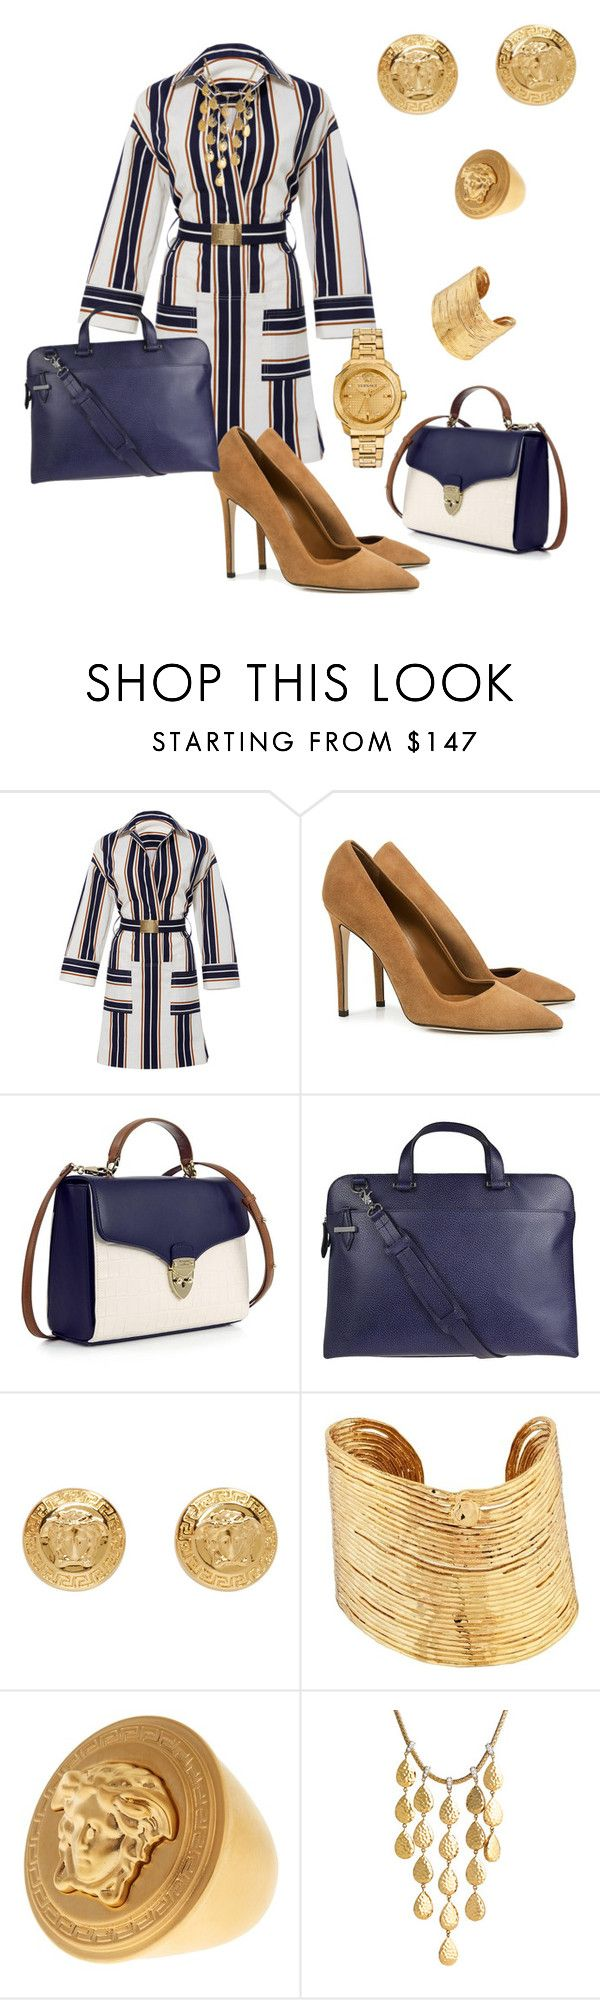 """""""A Woman of Many Jobs"""" by kerashawn ❤ liked on Polyvore featuring Tory Burch, Dee Keller, Aspinal of London, Lodis, Versace, Gas Bijoux and John Hardy"""